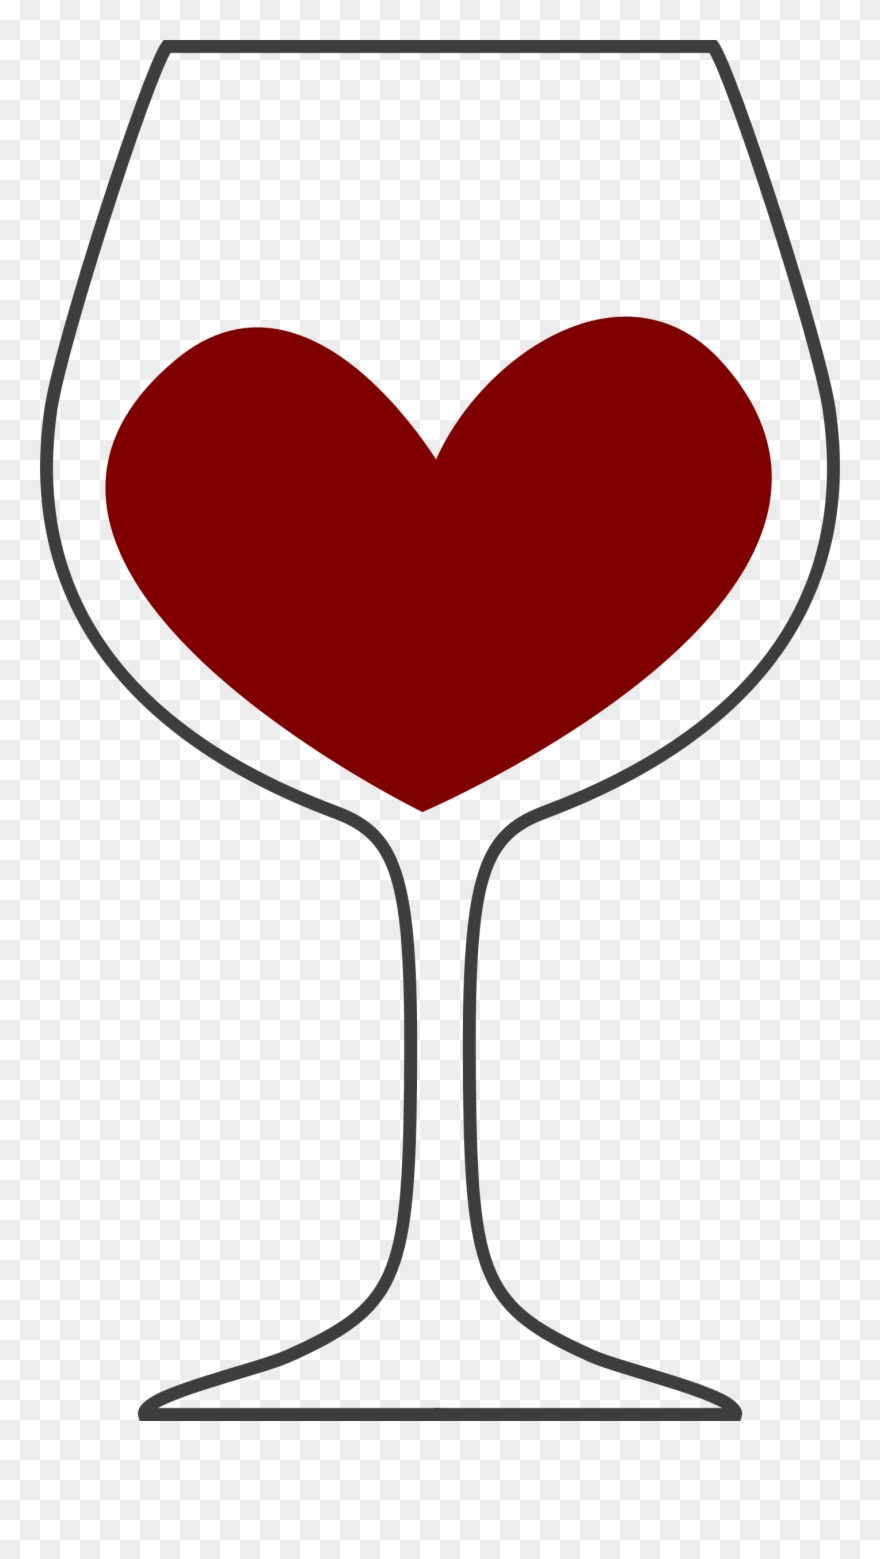 Wine glass with wine clipart